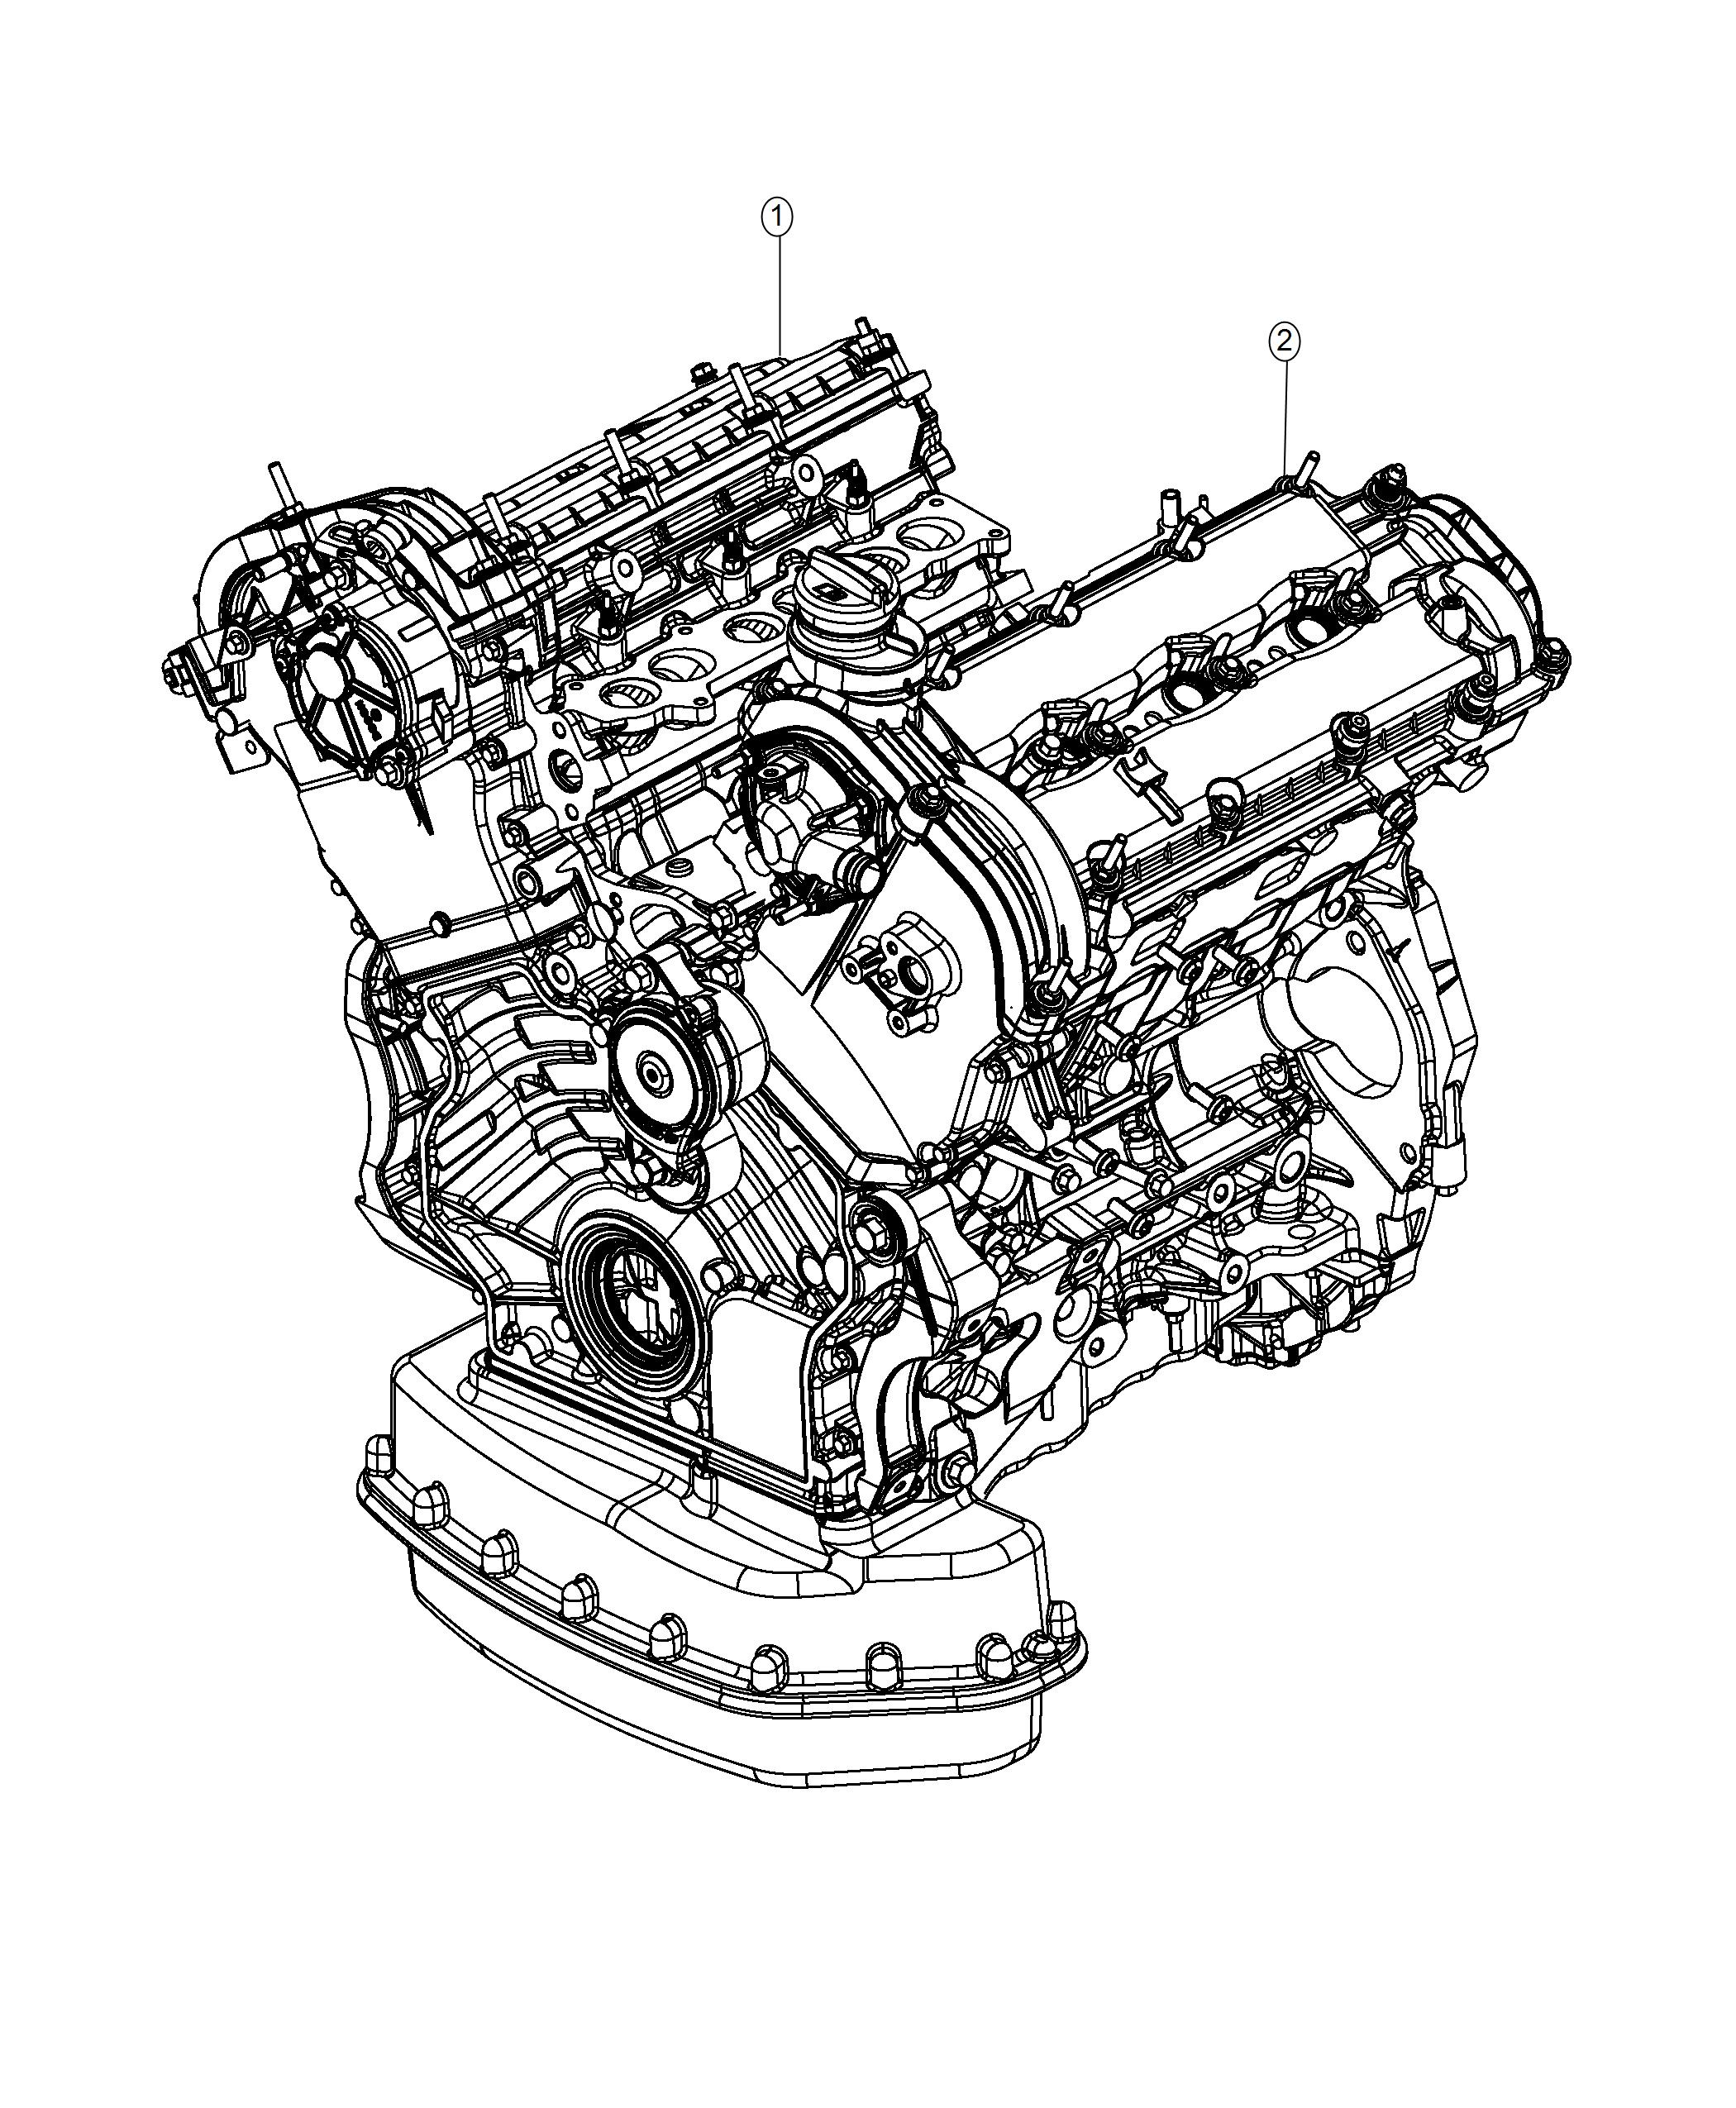 Jeep Grand Cherokee Engine Long Block Emission